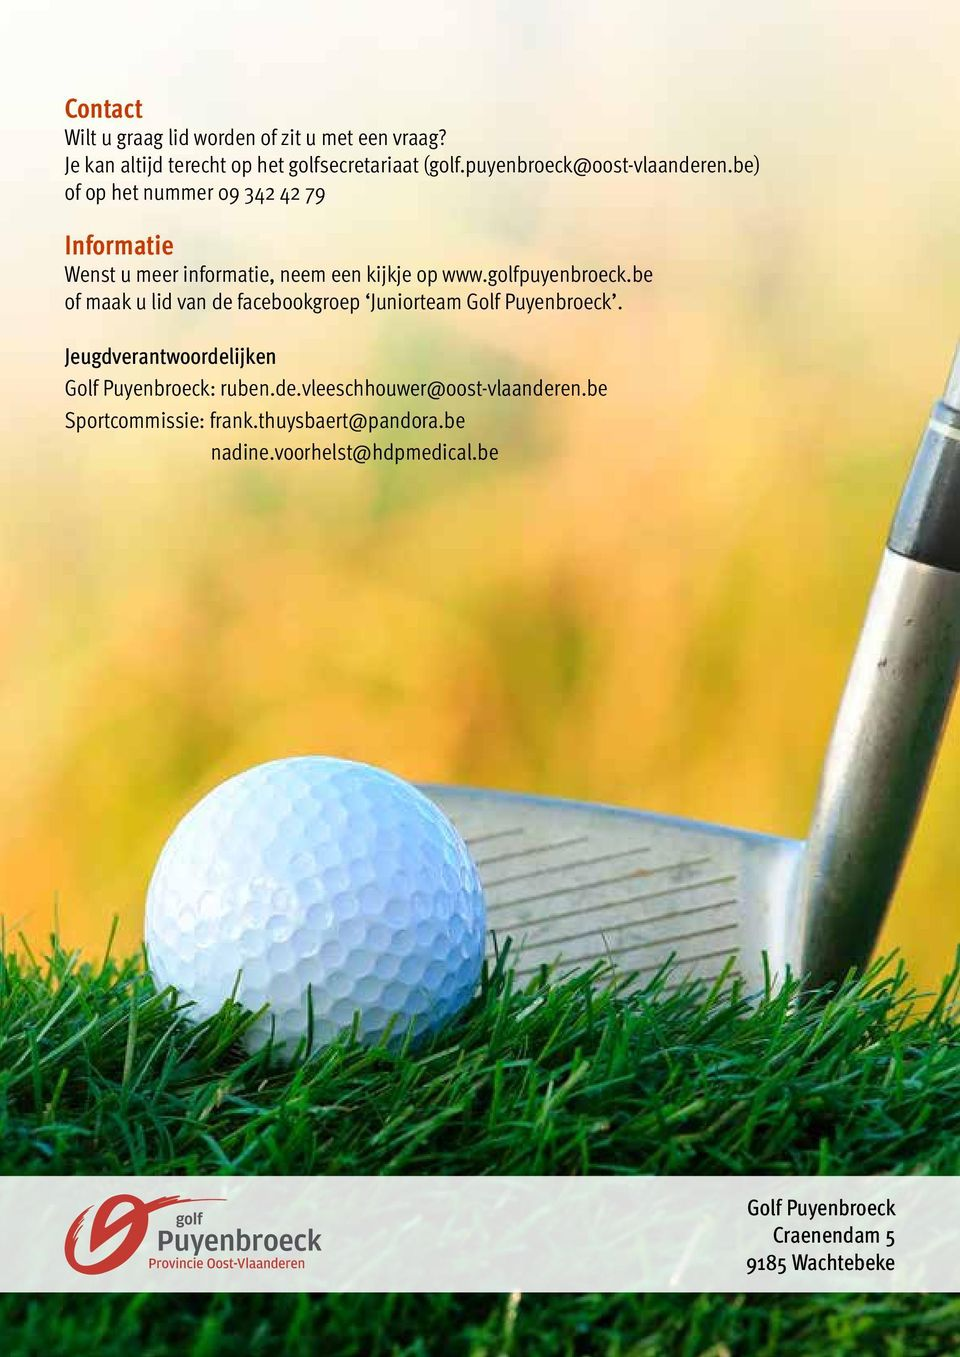 golfpuyenbroeck.be of maak u lid van de facebookgroep Juniorteam Golf Puyenbroeck.